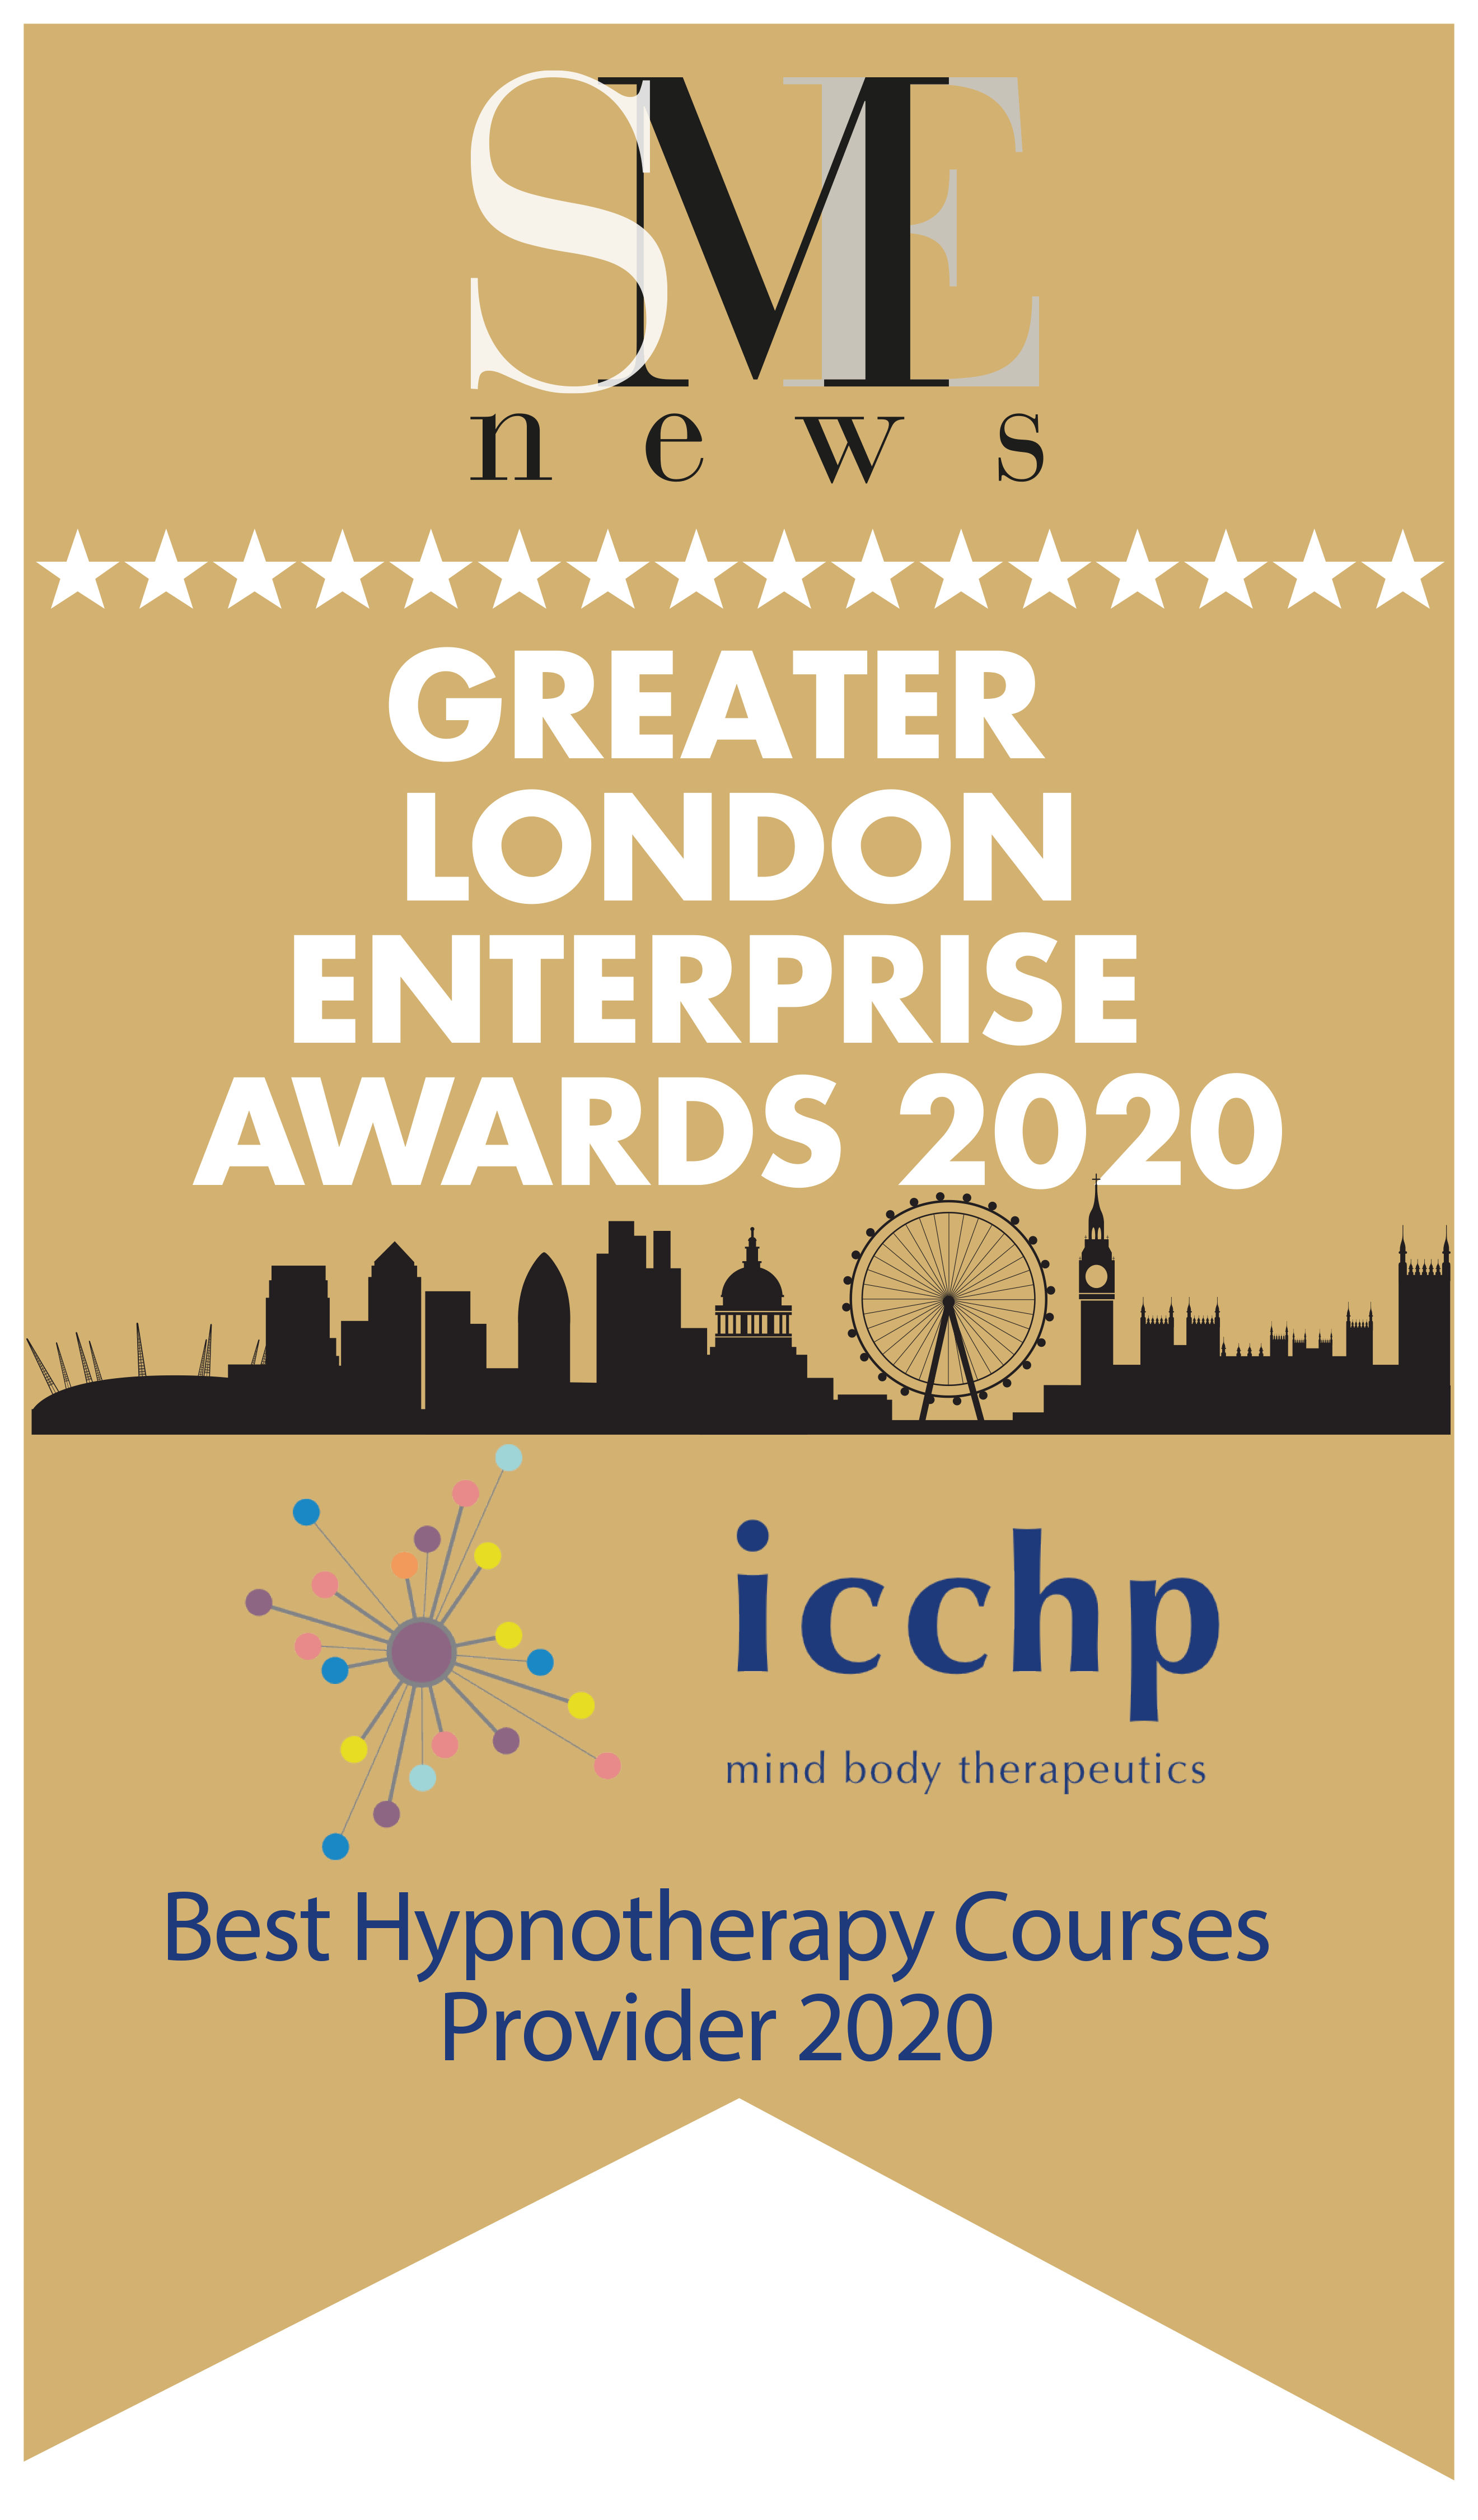 Best Hypnotherapy Course Provider